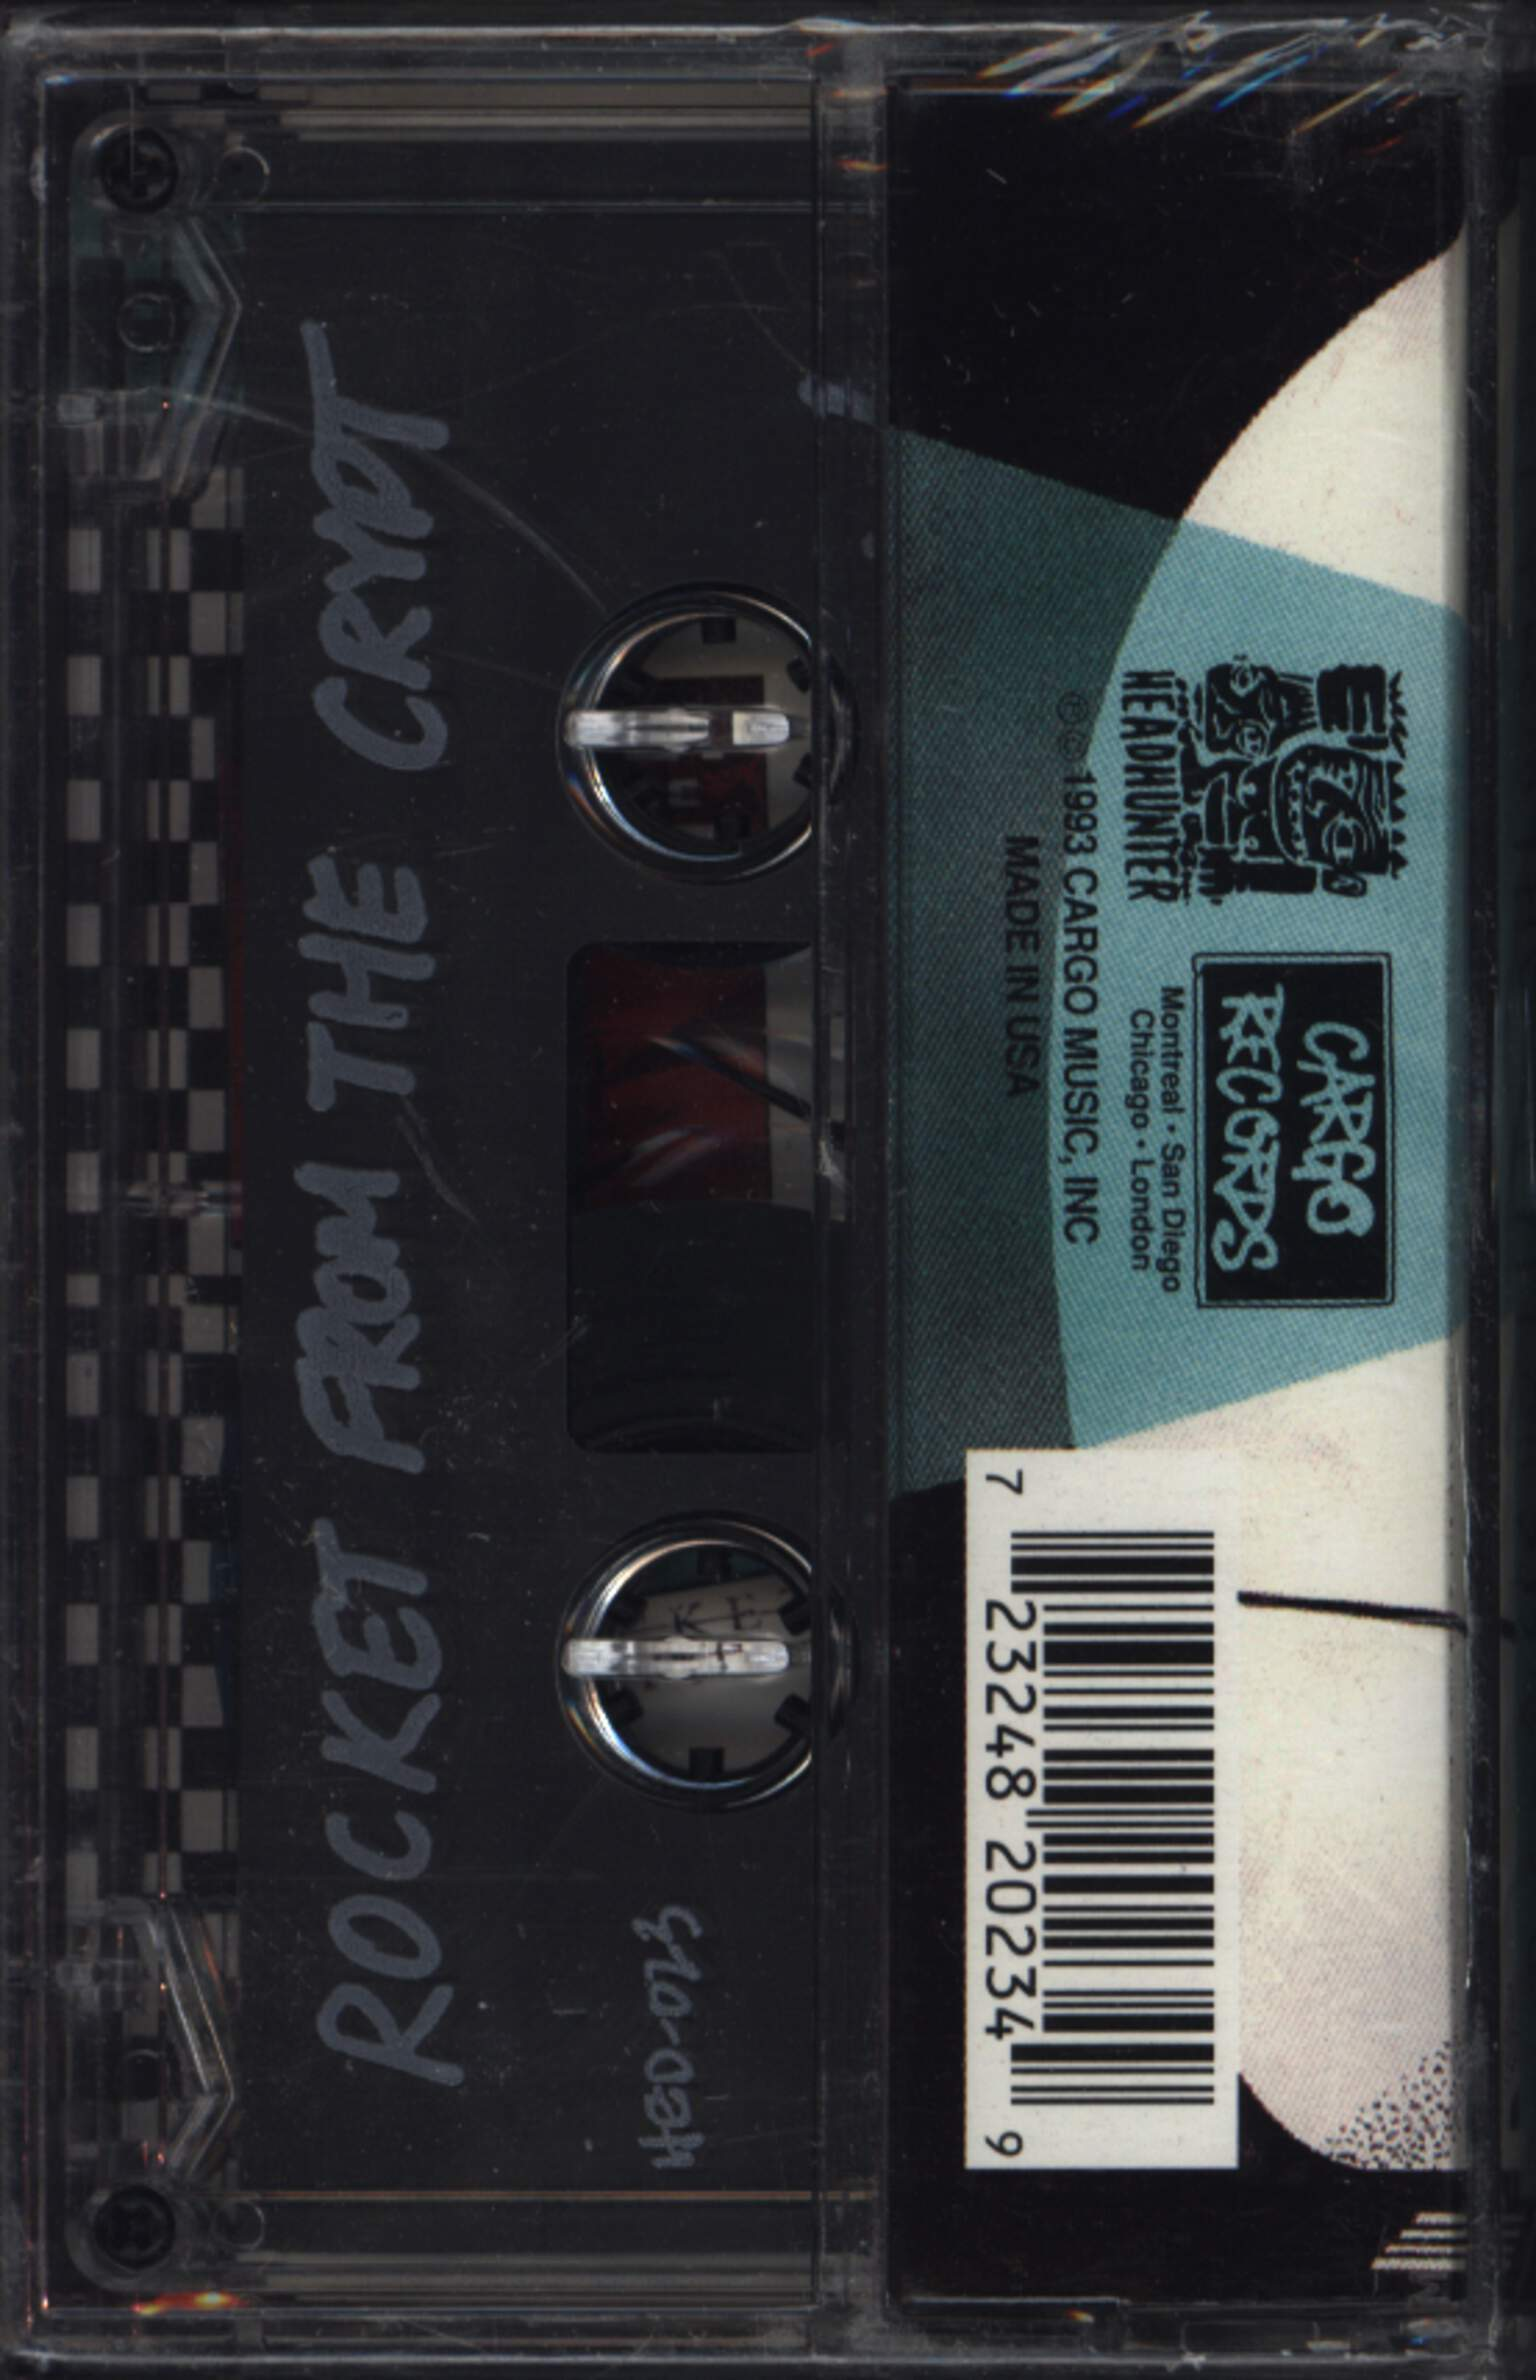 Rocket From the Crypt: All Systems Go!, Compact Cassette